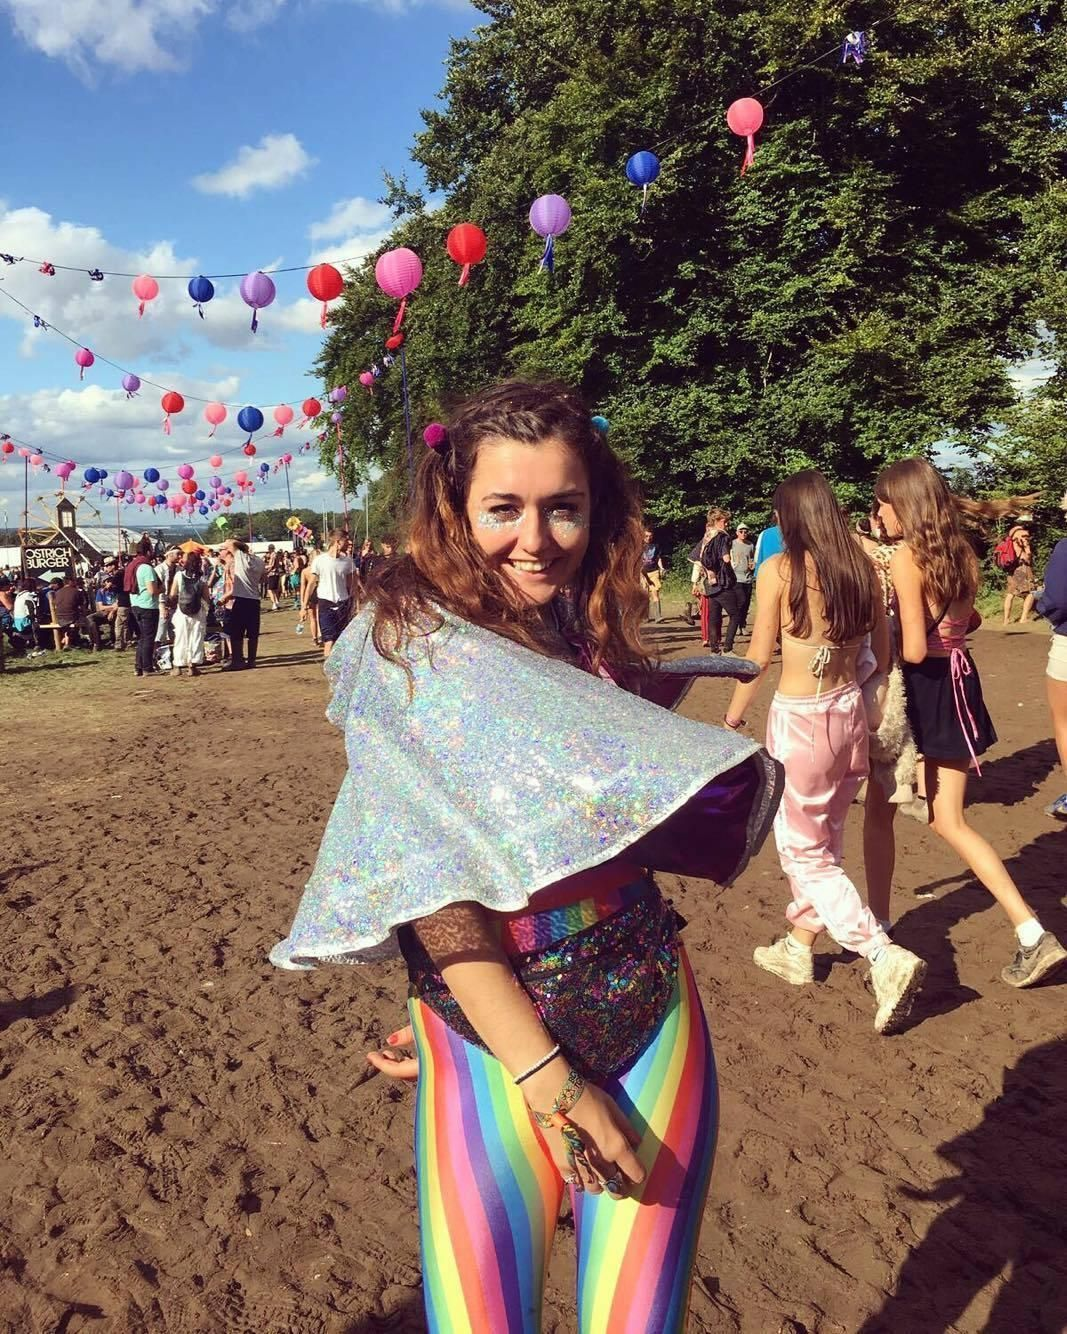 Image may contain: Is Boomtown Fair 2019 cancelled, Boomtown, 2019, cancelled, still going ahead, weather, warnings, on, location, date, latest, news, People, Outdoors, Vacation, Leisure Activities, Shoe, Footwear, Shorts, Female, Apparel, Clothing, Crowd, Festival, Human, Person